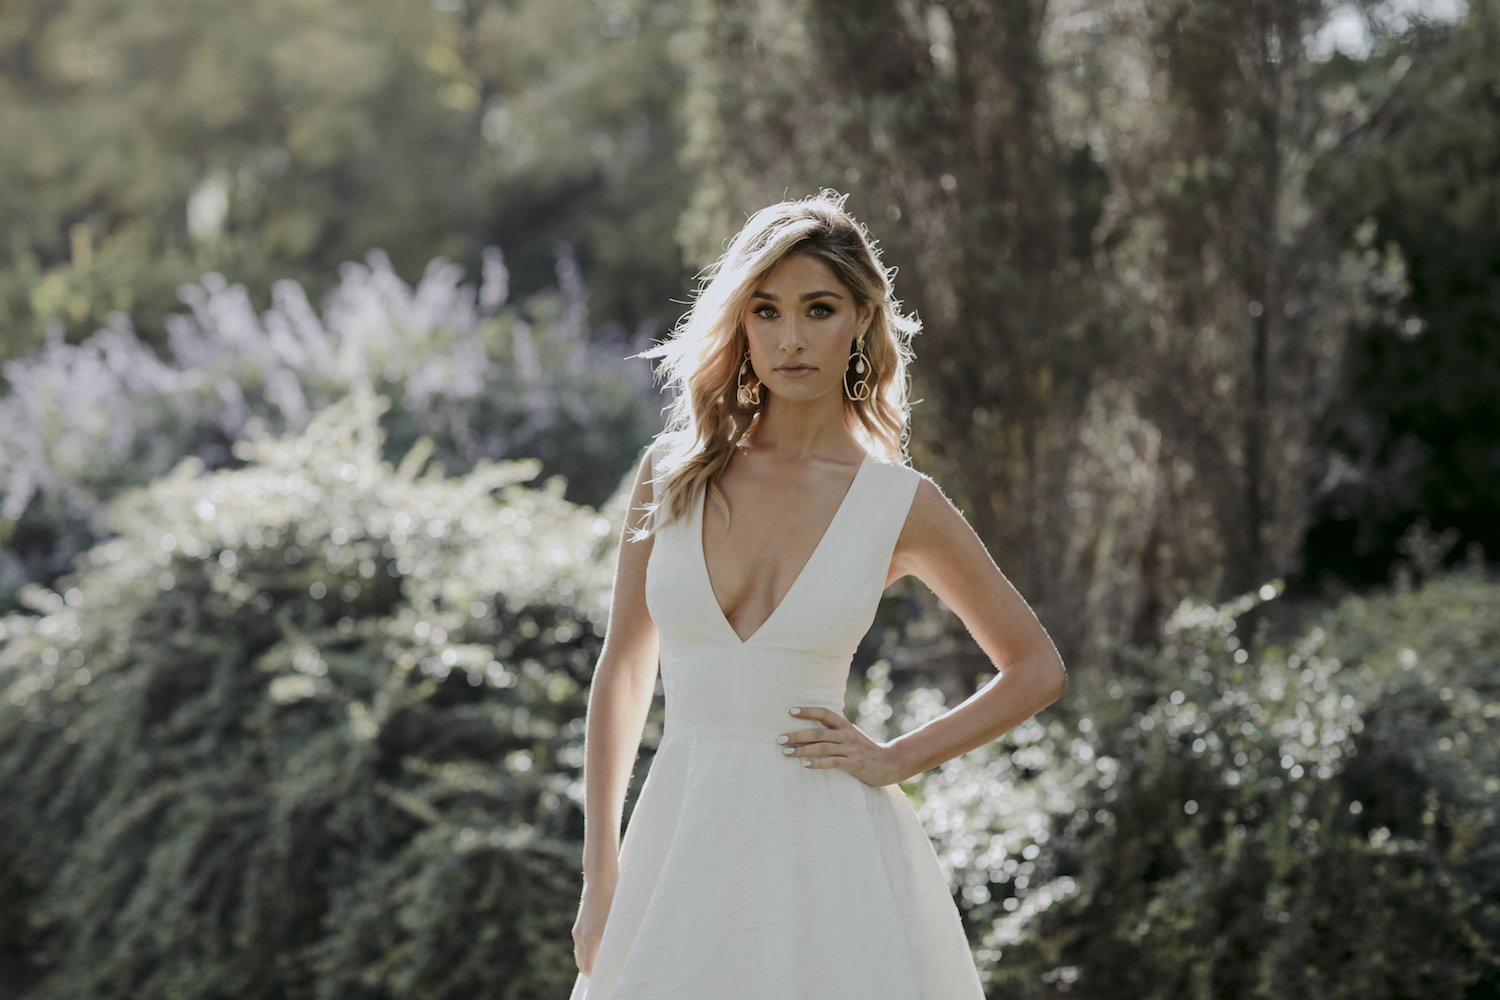 Colter Wedding Dress by Kate McDonald with Creative Direction by Engaged Creative